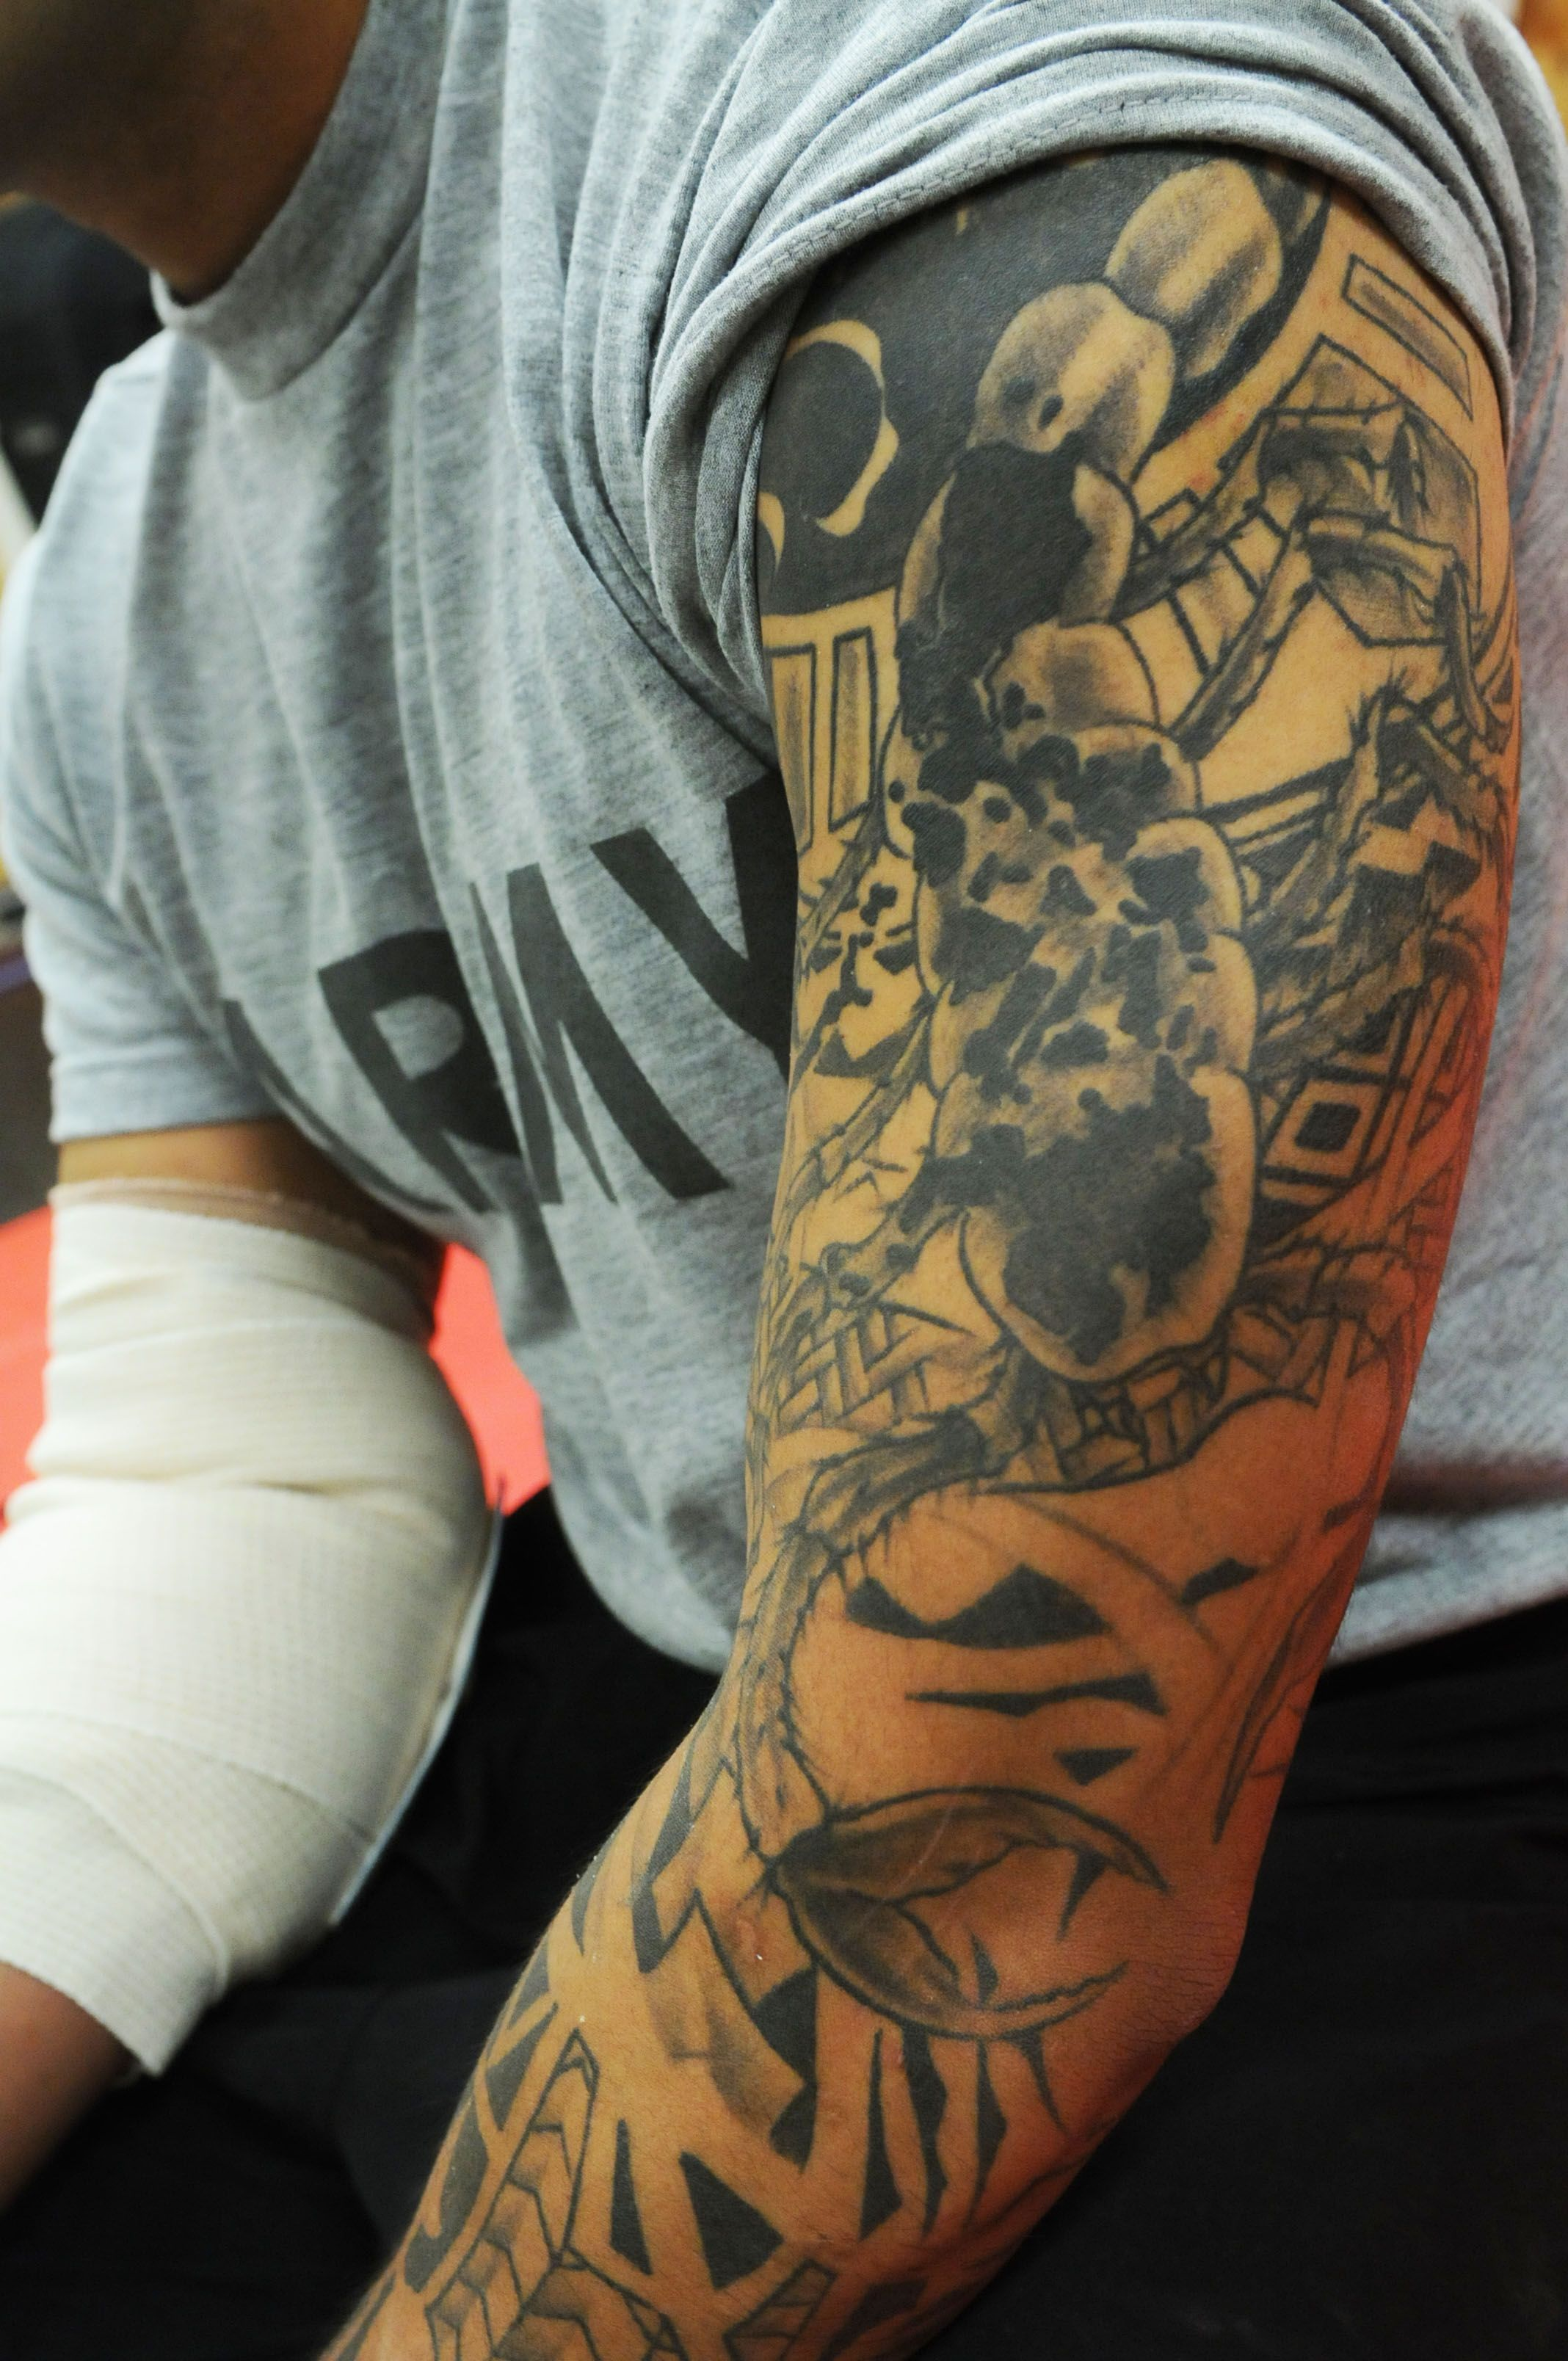 Fi fireman tattoo designs - Pics Photos Military Tattoos And Tattoo Designs Pictures Gallery